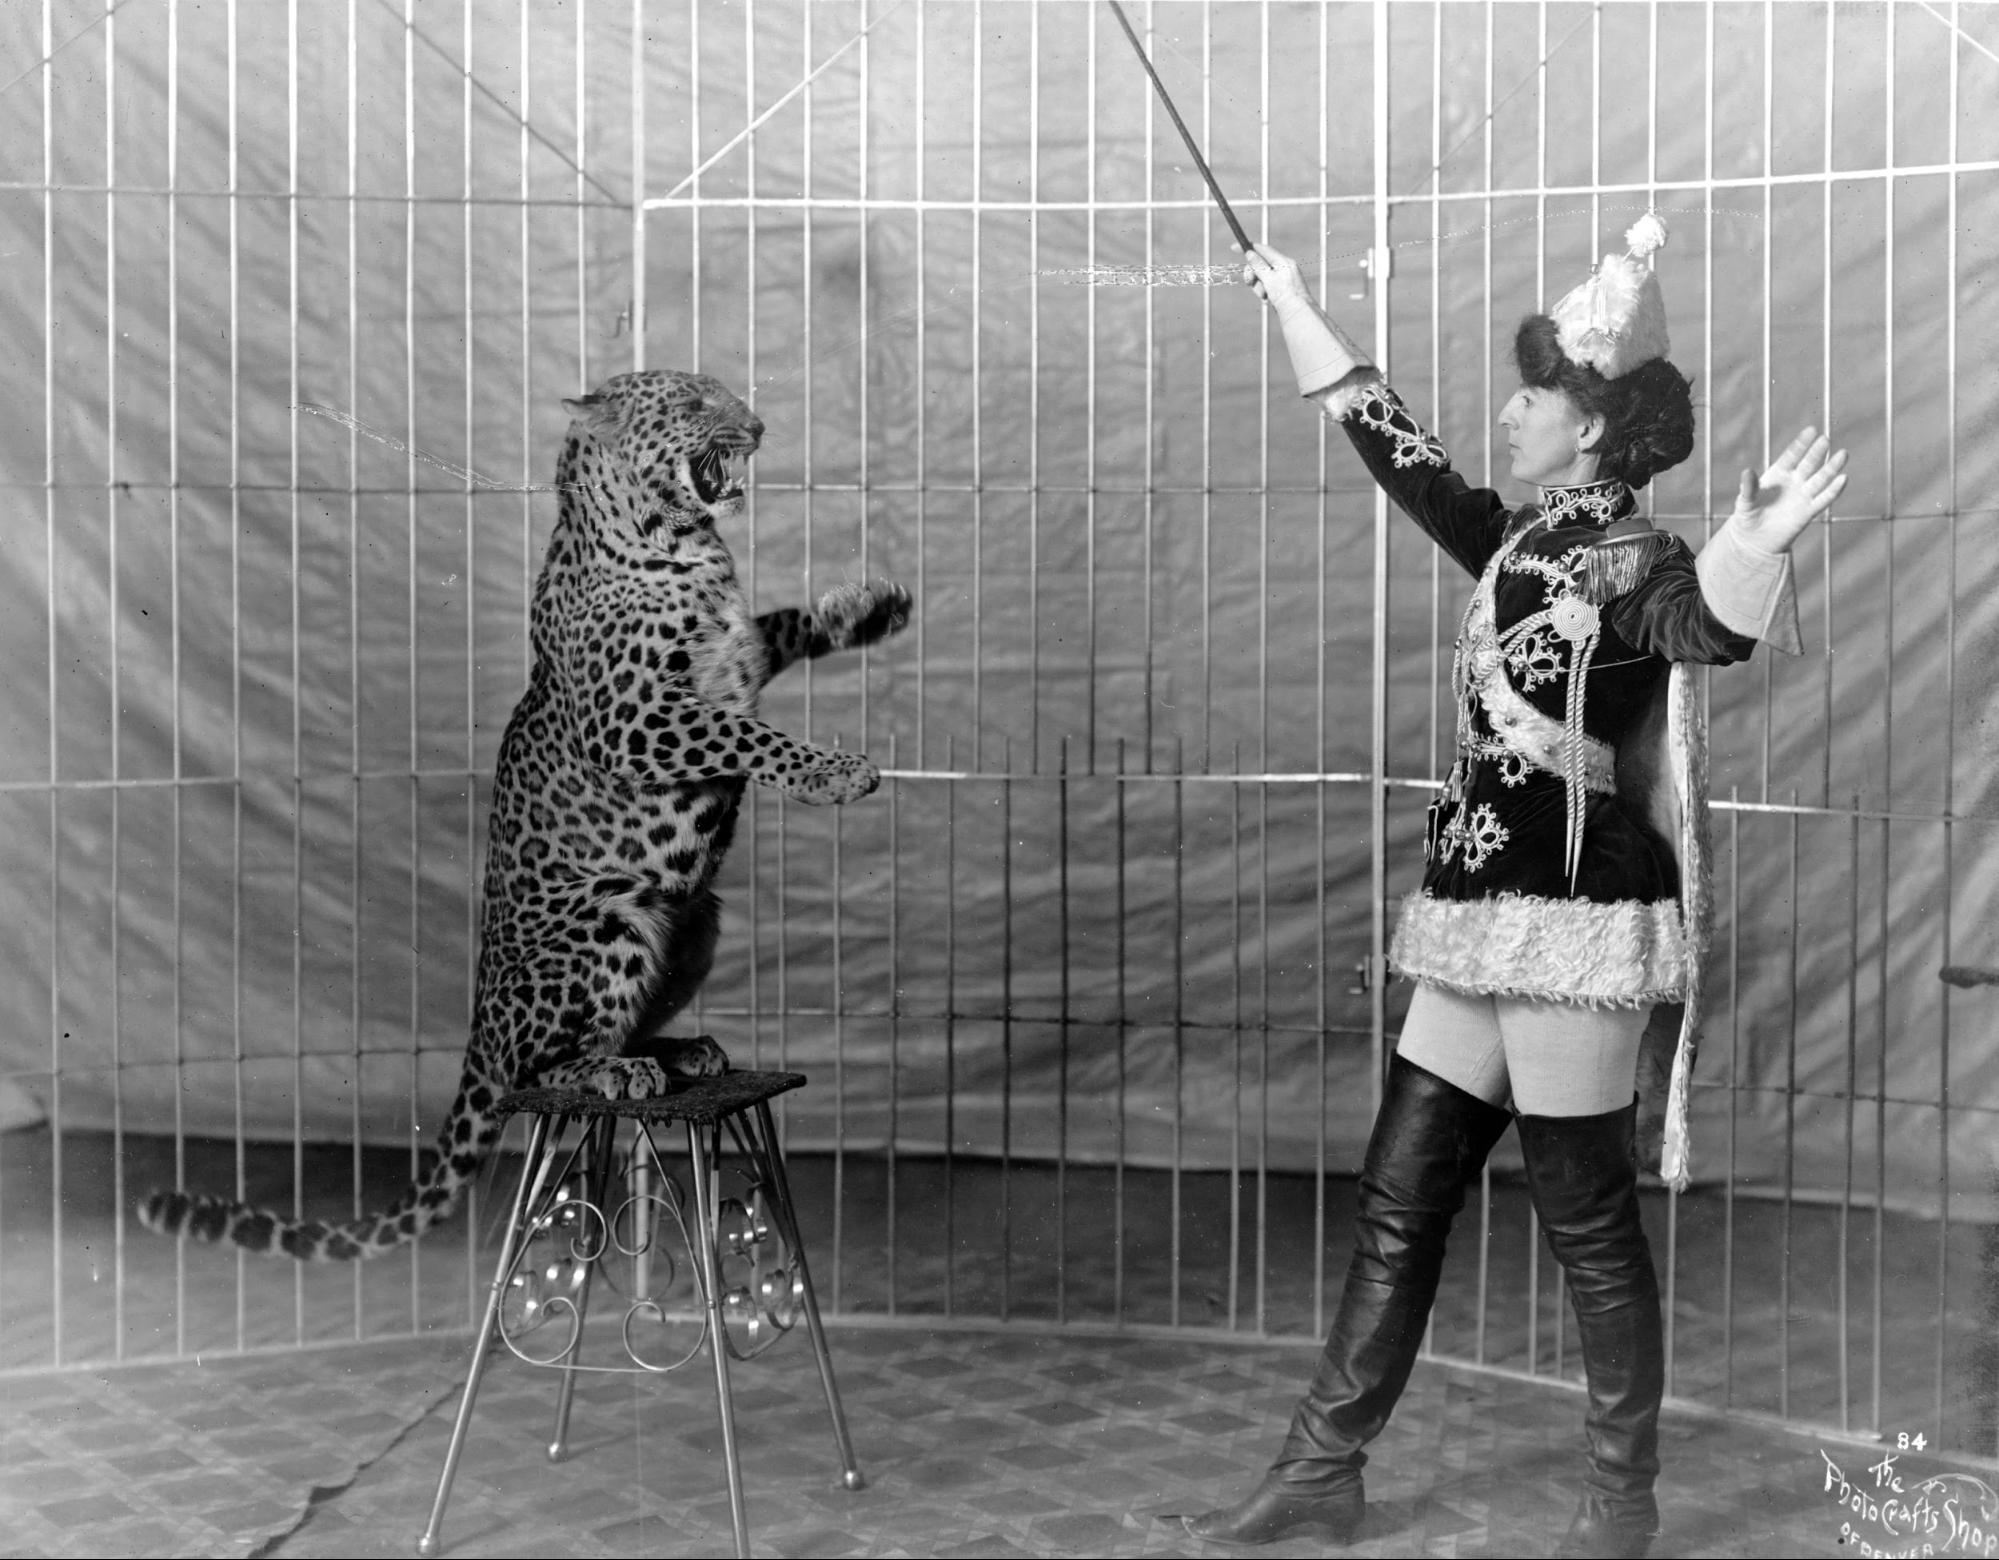 Female_animal_trainer_and_leopard,_c1906.jpg